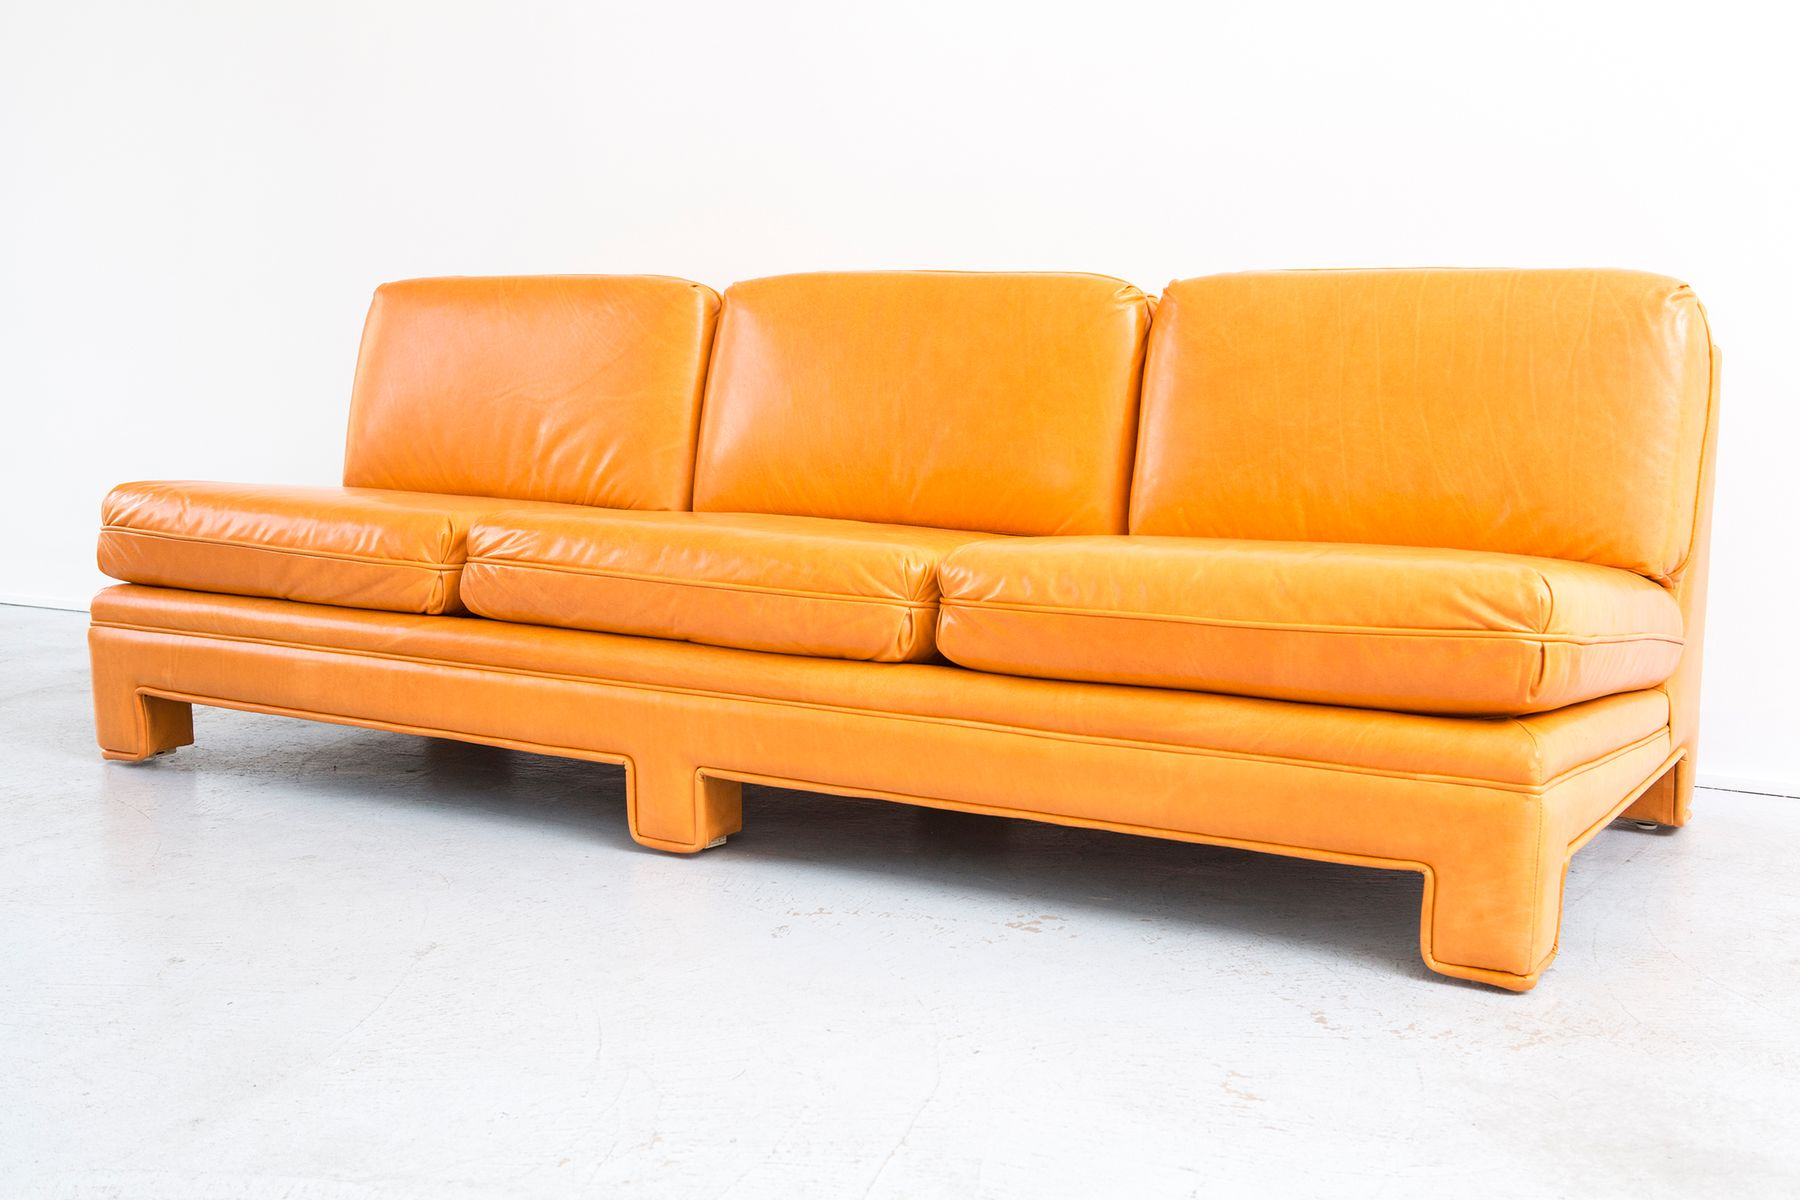 Vintage Sofa by Milo Baughman for sale at Pamono